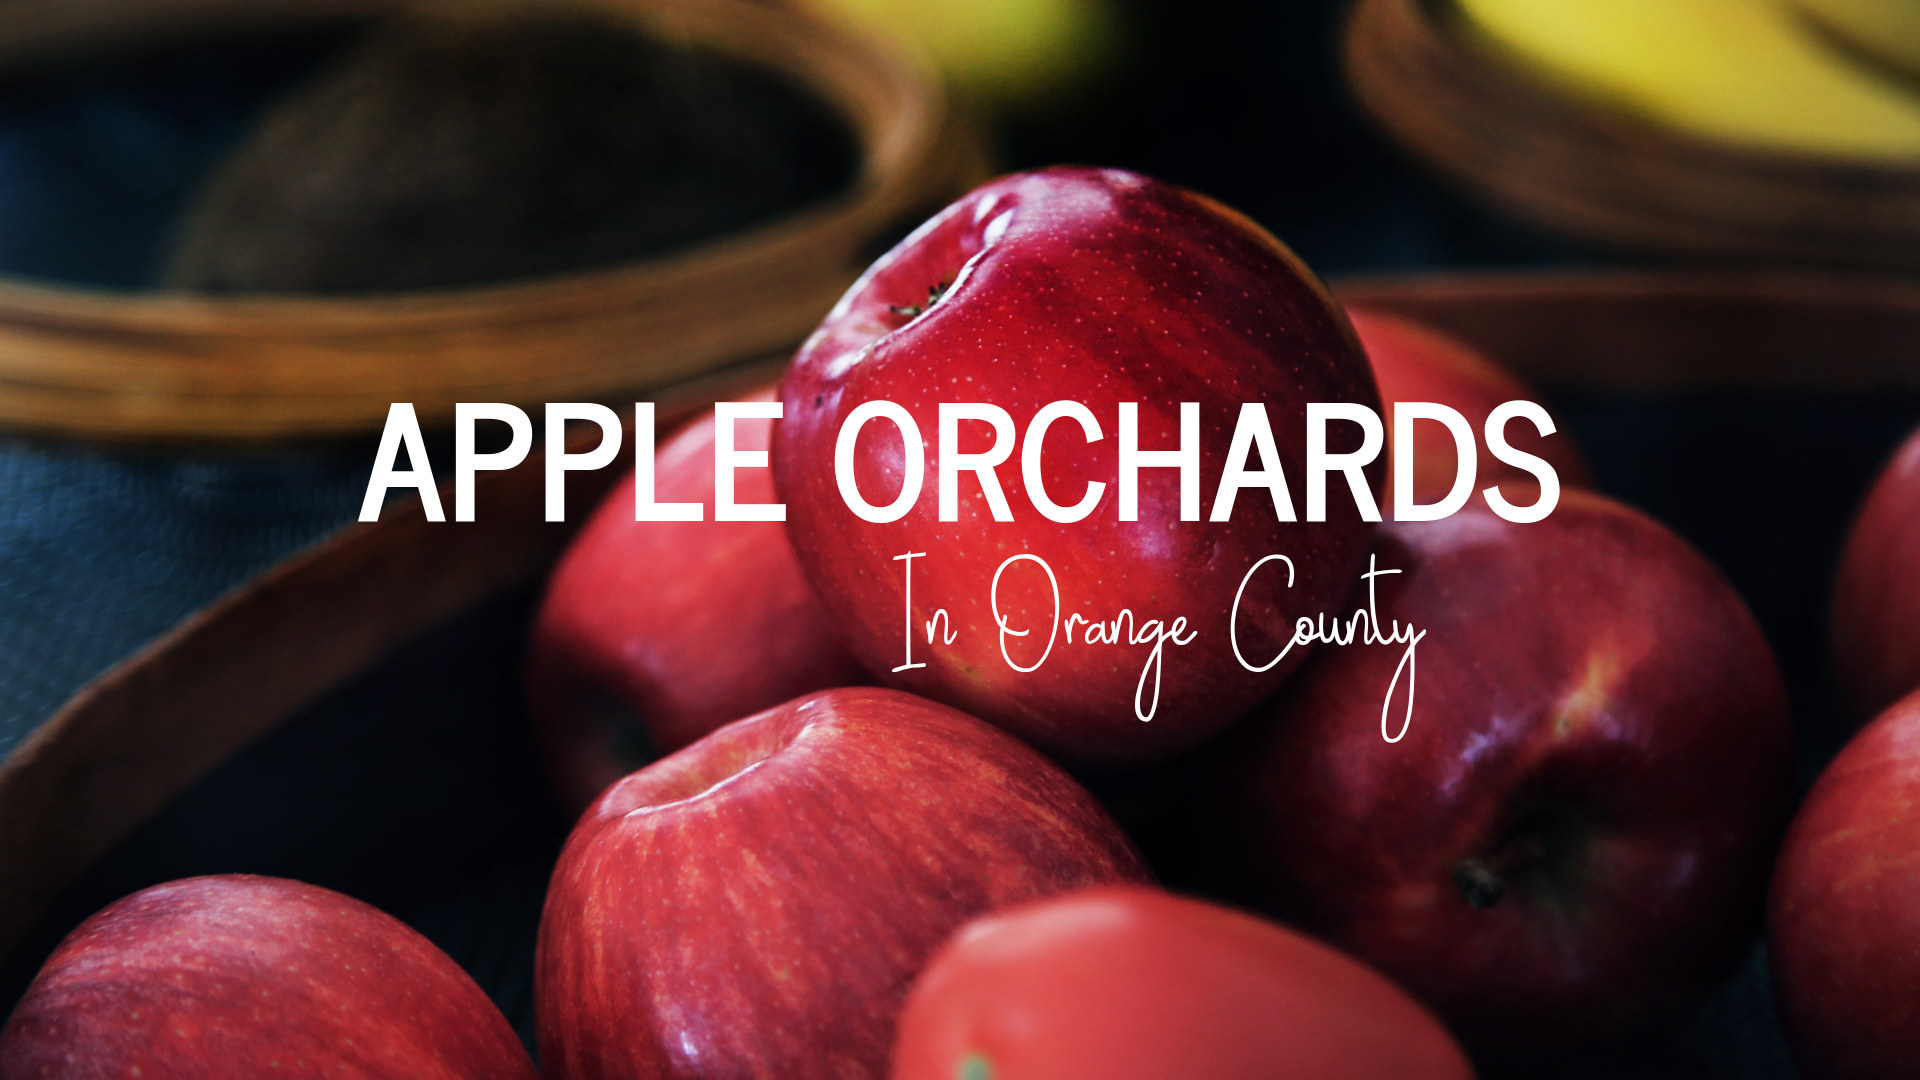 Apple Orchards in Orange County